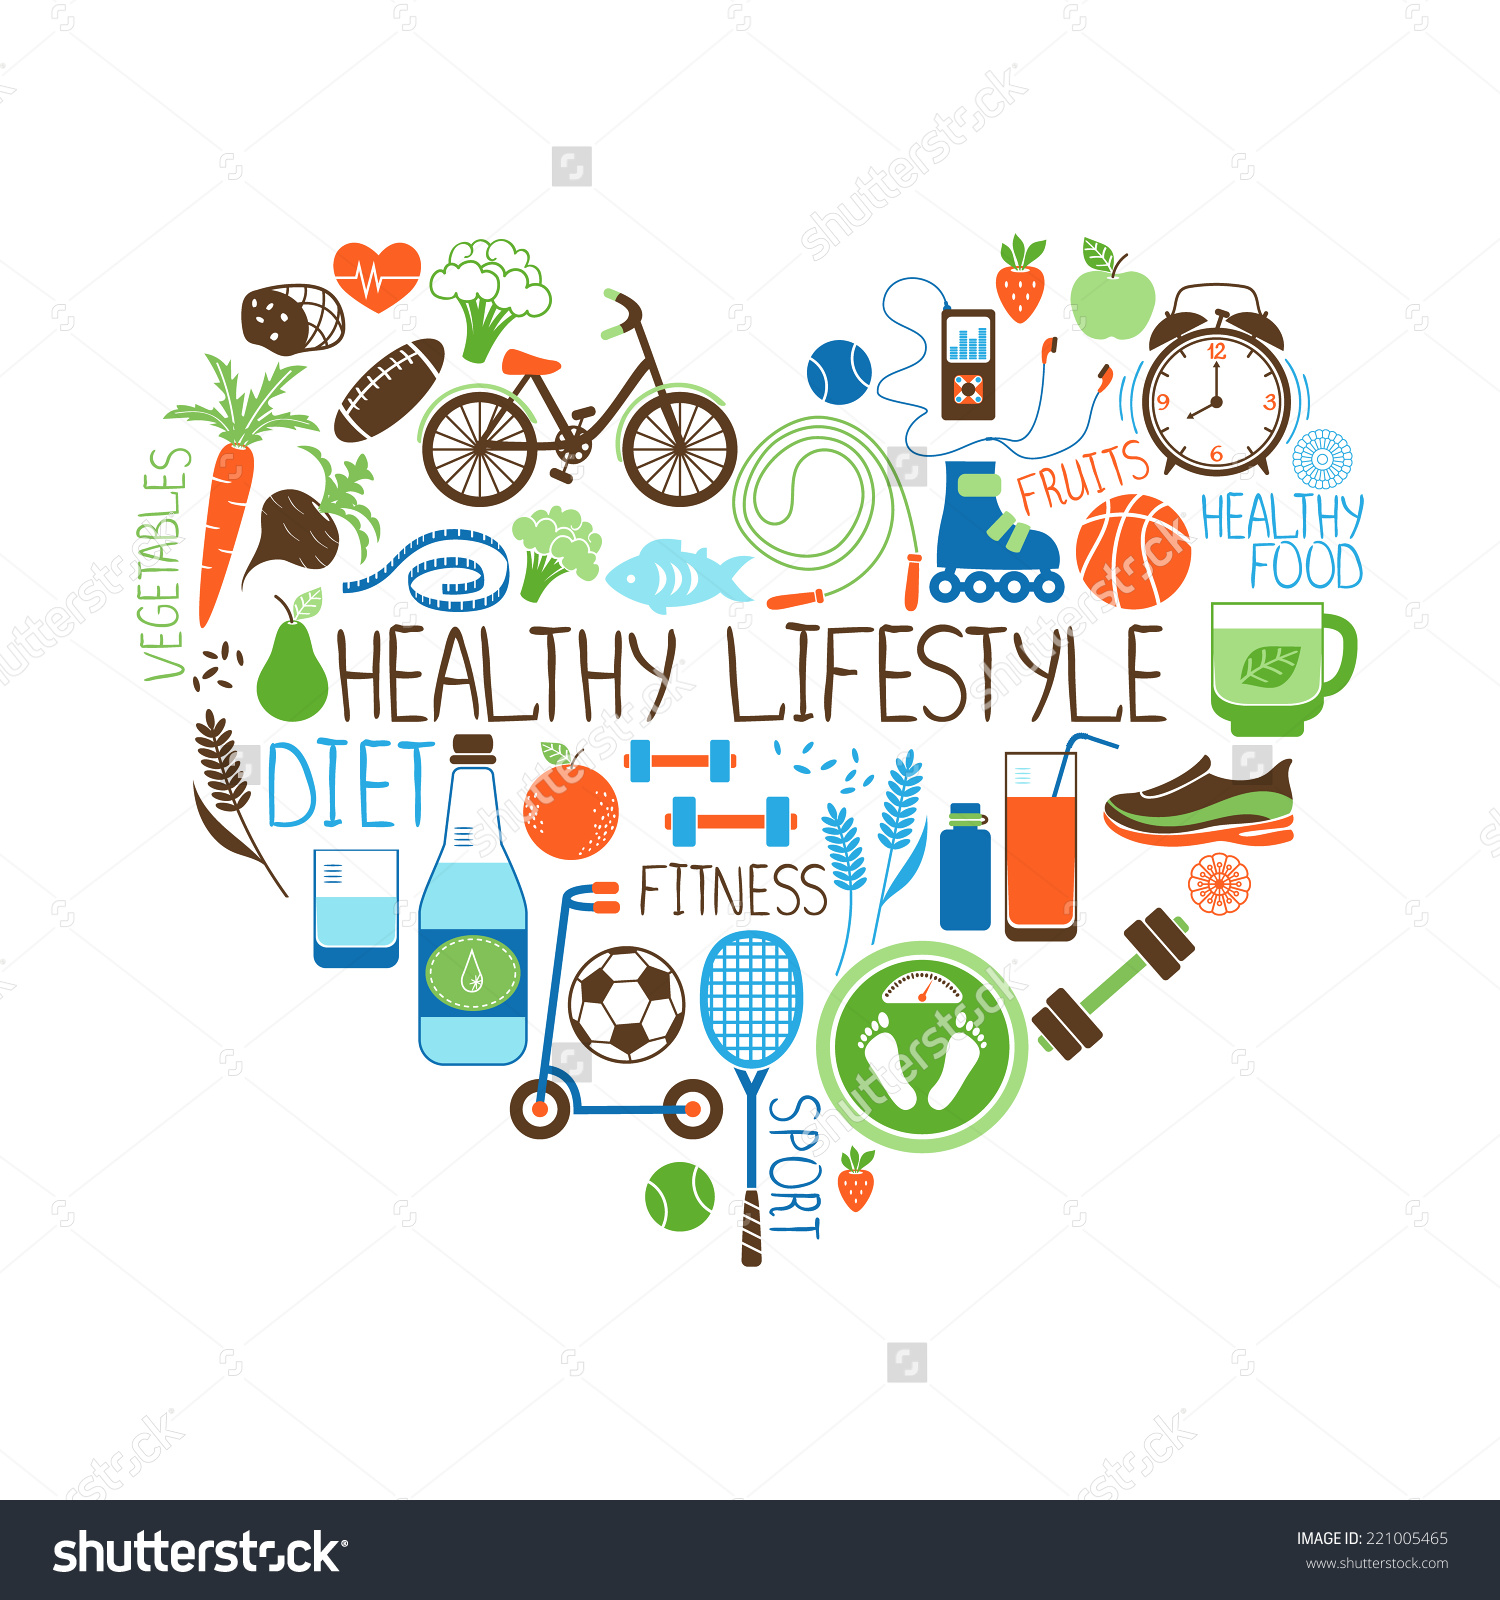 Health And Fitness: Start Living Healthy Now